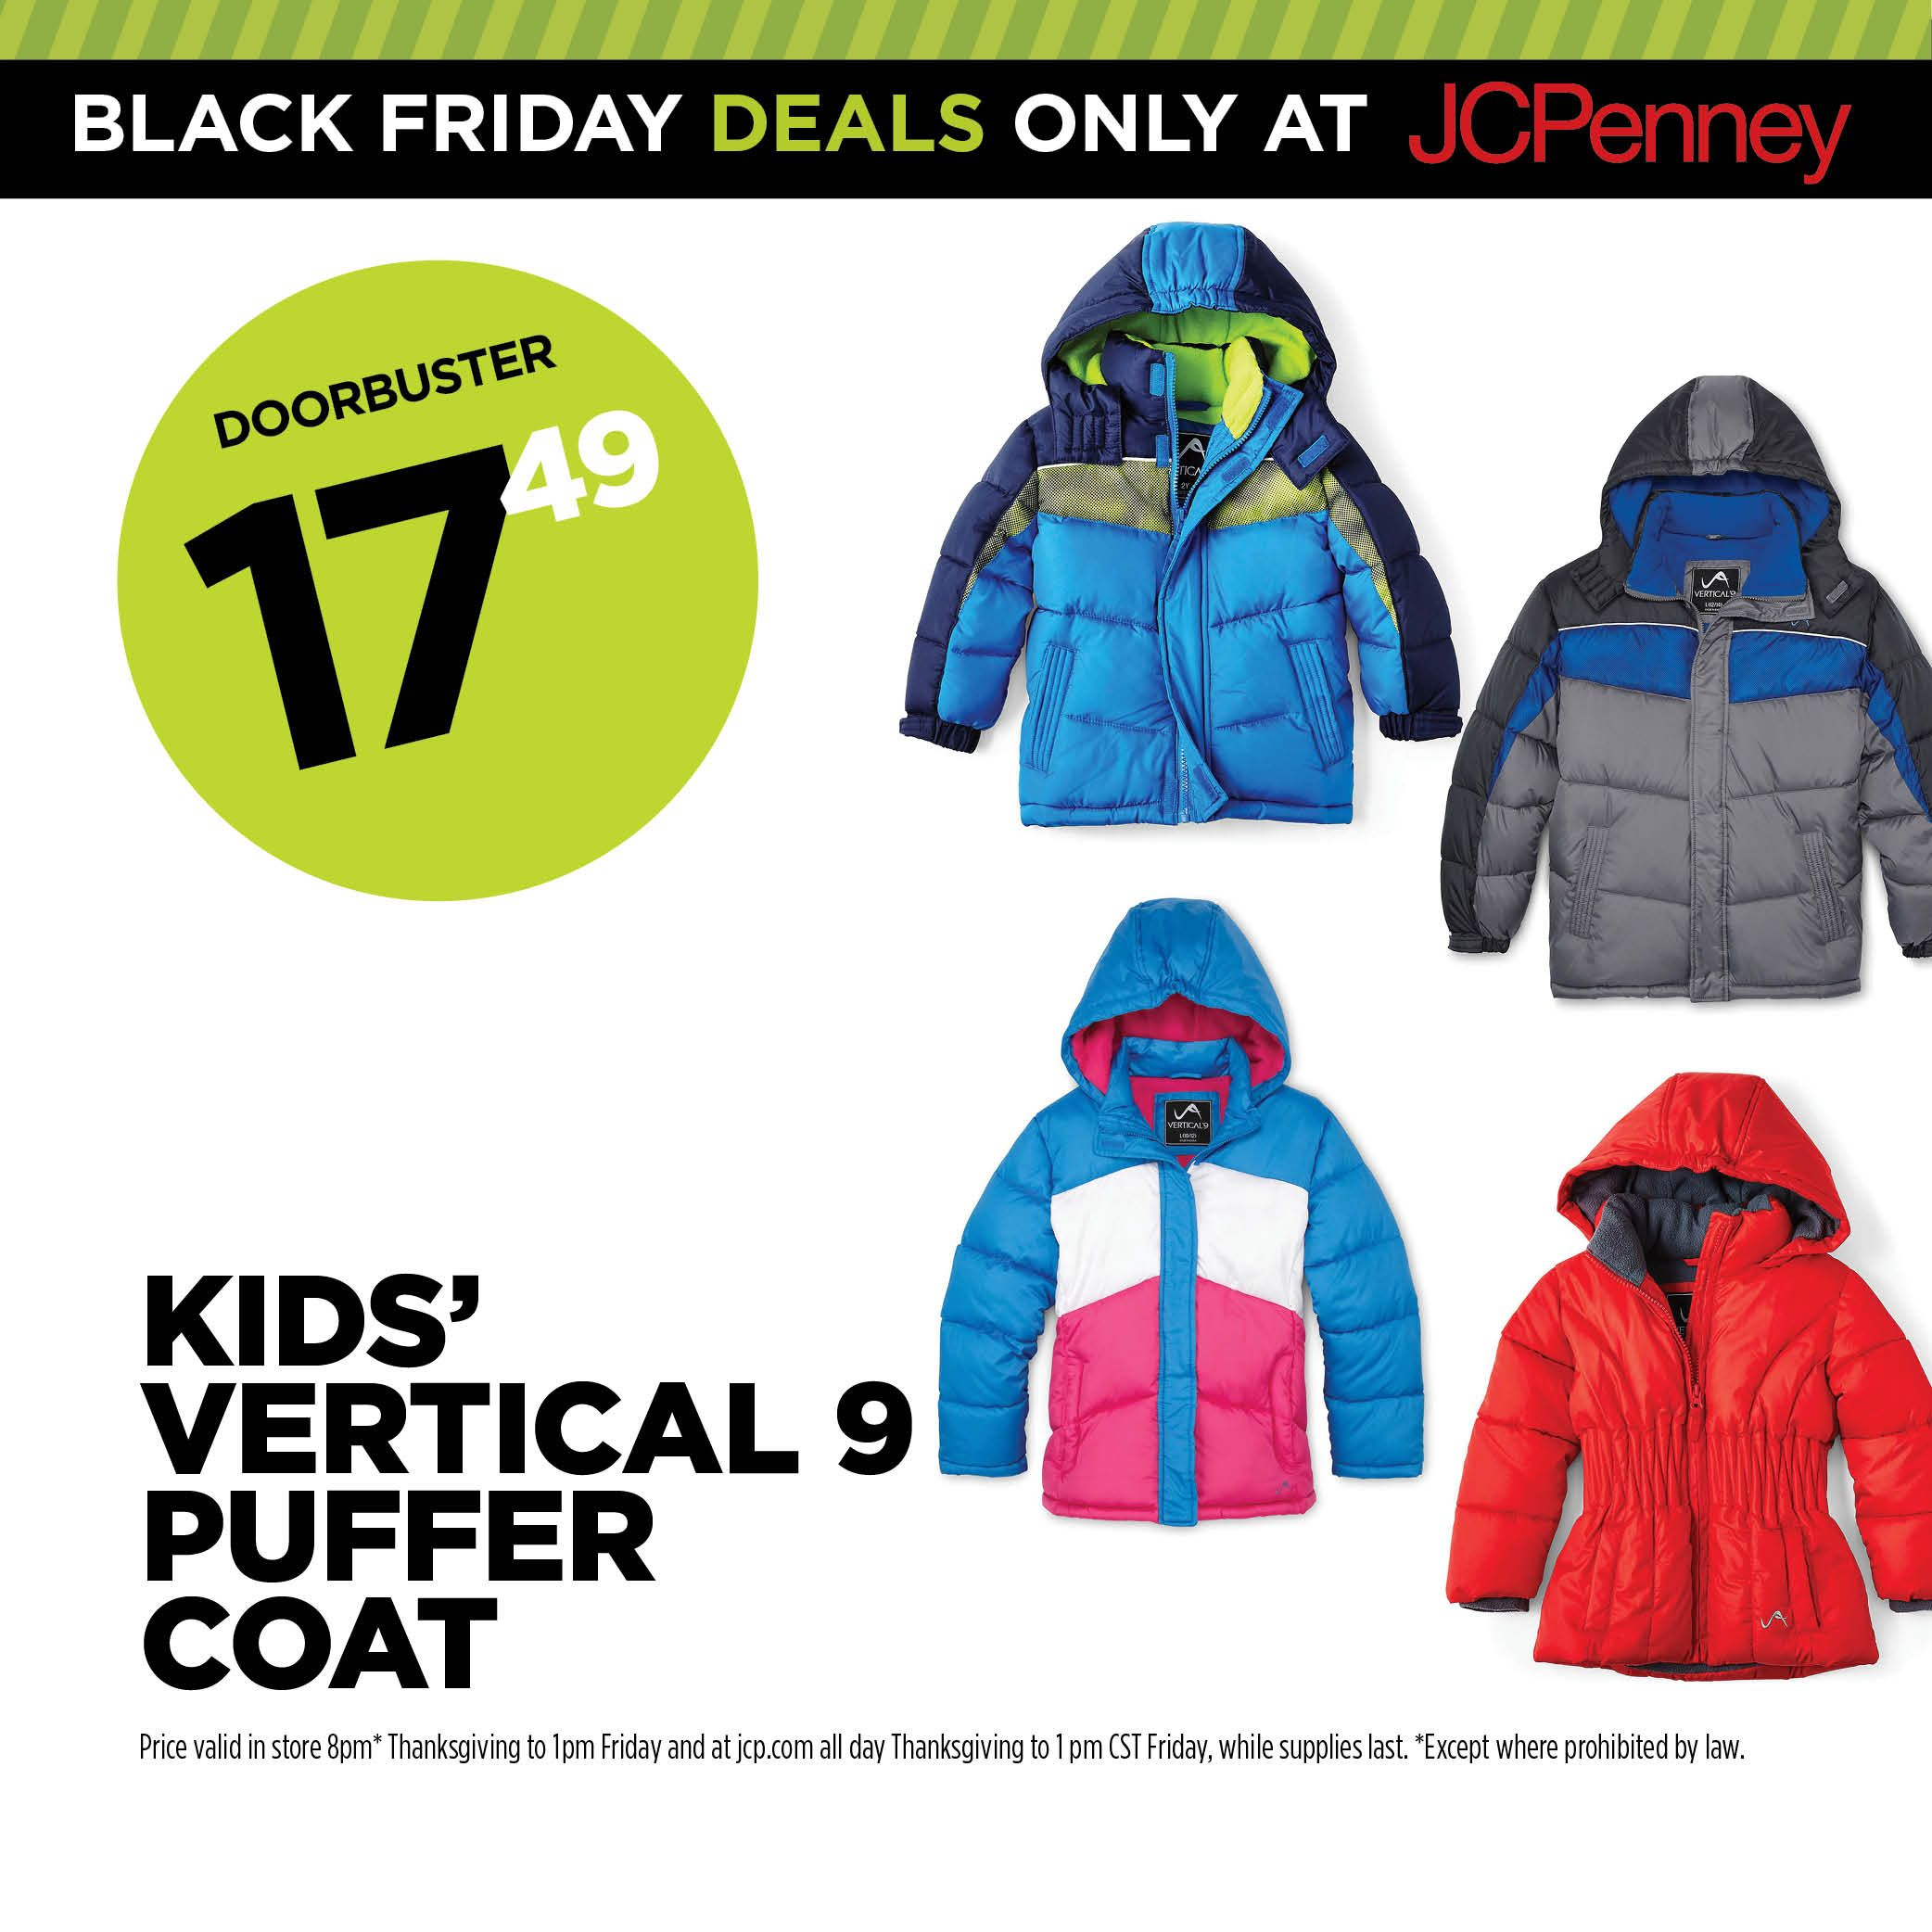 Jcpenney Black Friday Deal How About A Little Puff Love Vertical 9 Kids Puffer Coats Are 17 49 Jcpenney Black Friday Black Friday Deals Black Friday